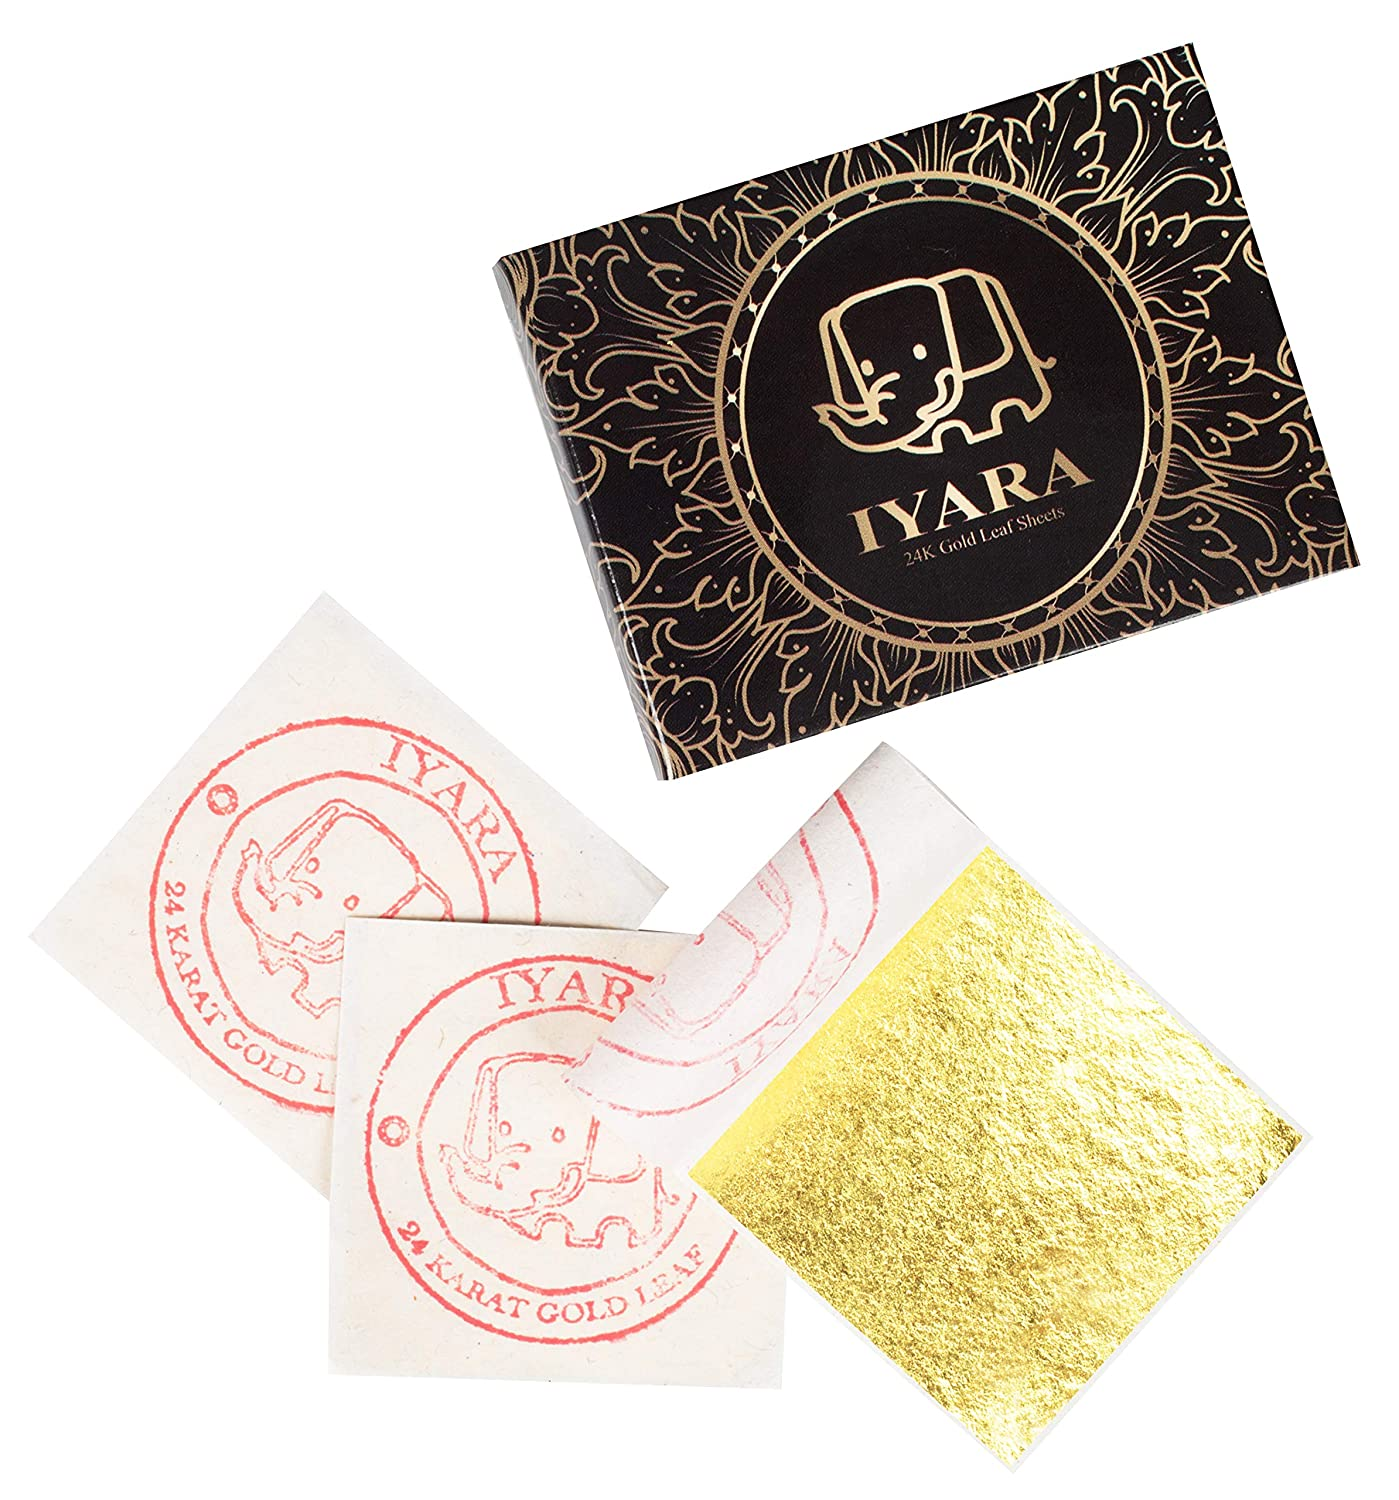 24K Edible Gold Leaf 50 Sheets 1.5x1.5 for Cake Decoration and Food, Baking, Art, Crafts IYARA THAILAND